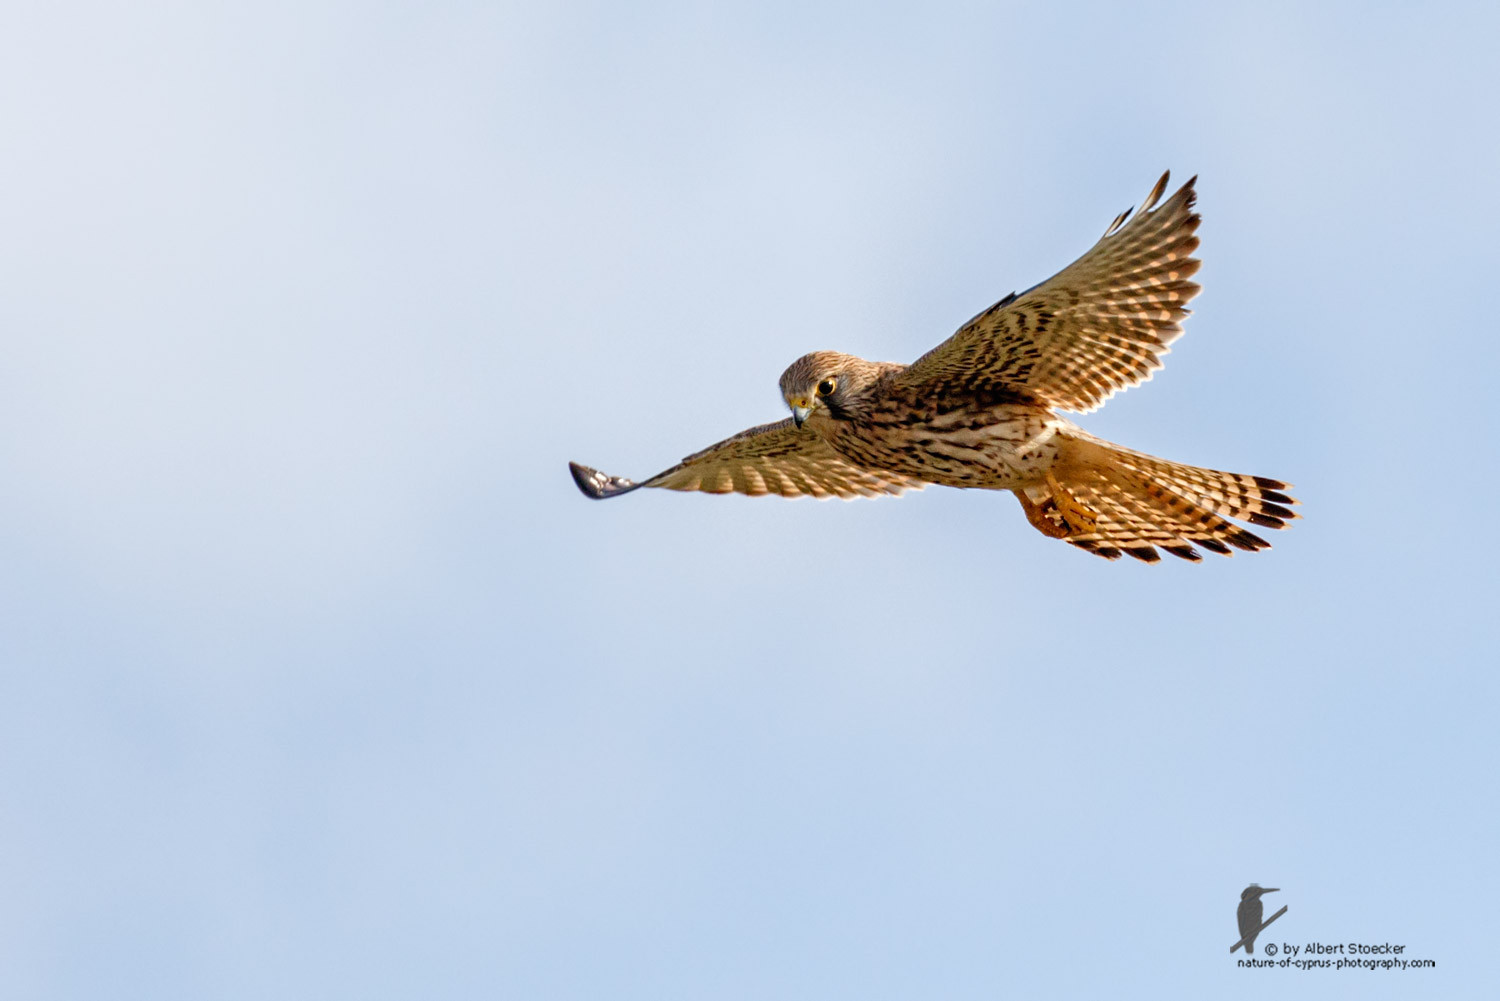 Falco tinnunculus - Common Kestrel - Turmfalke, Cyprus, Mandria Beach, March 2016